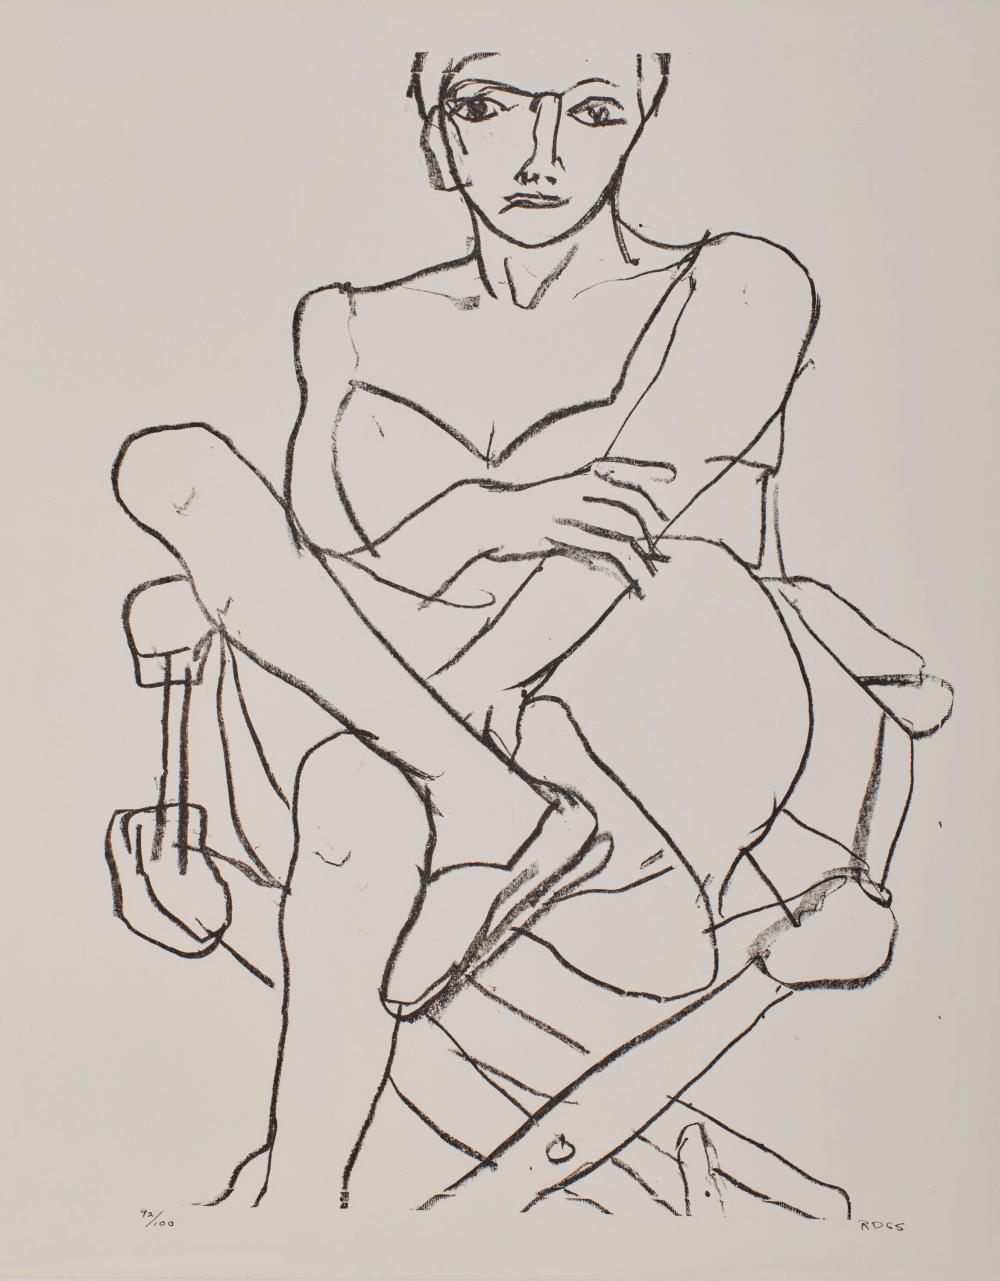 RICHARD DIEBENKORN, (American, 1922-1993), Seated Woman in Chemise, 1965, lithograph, 28 x 22 in., frame: 30 1/2 x 25 in.